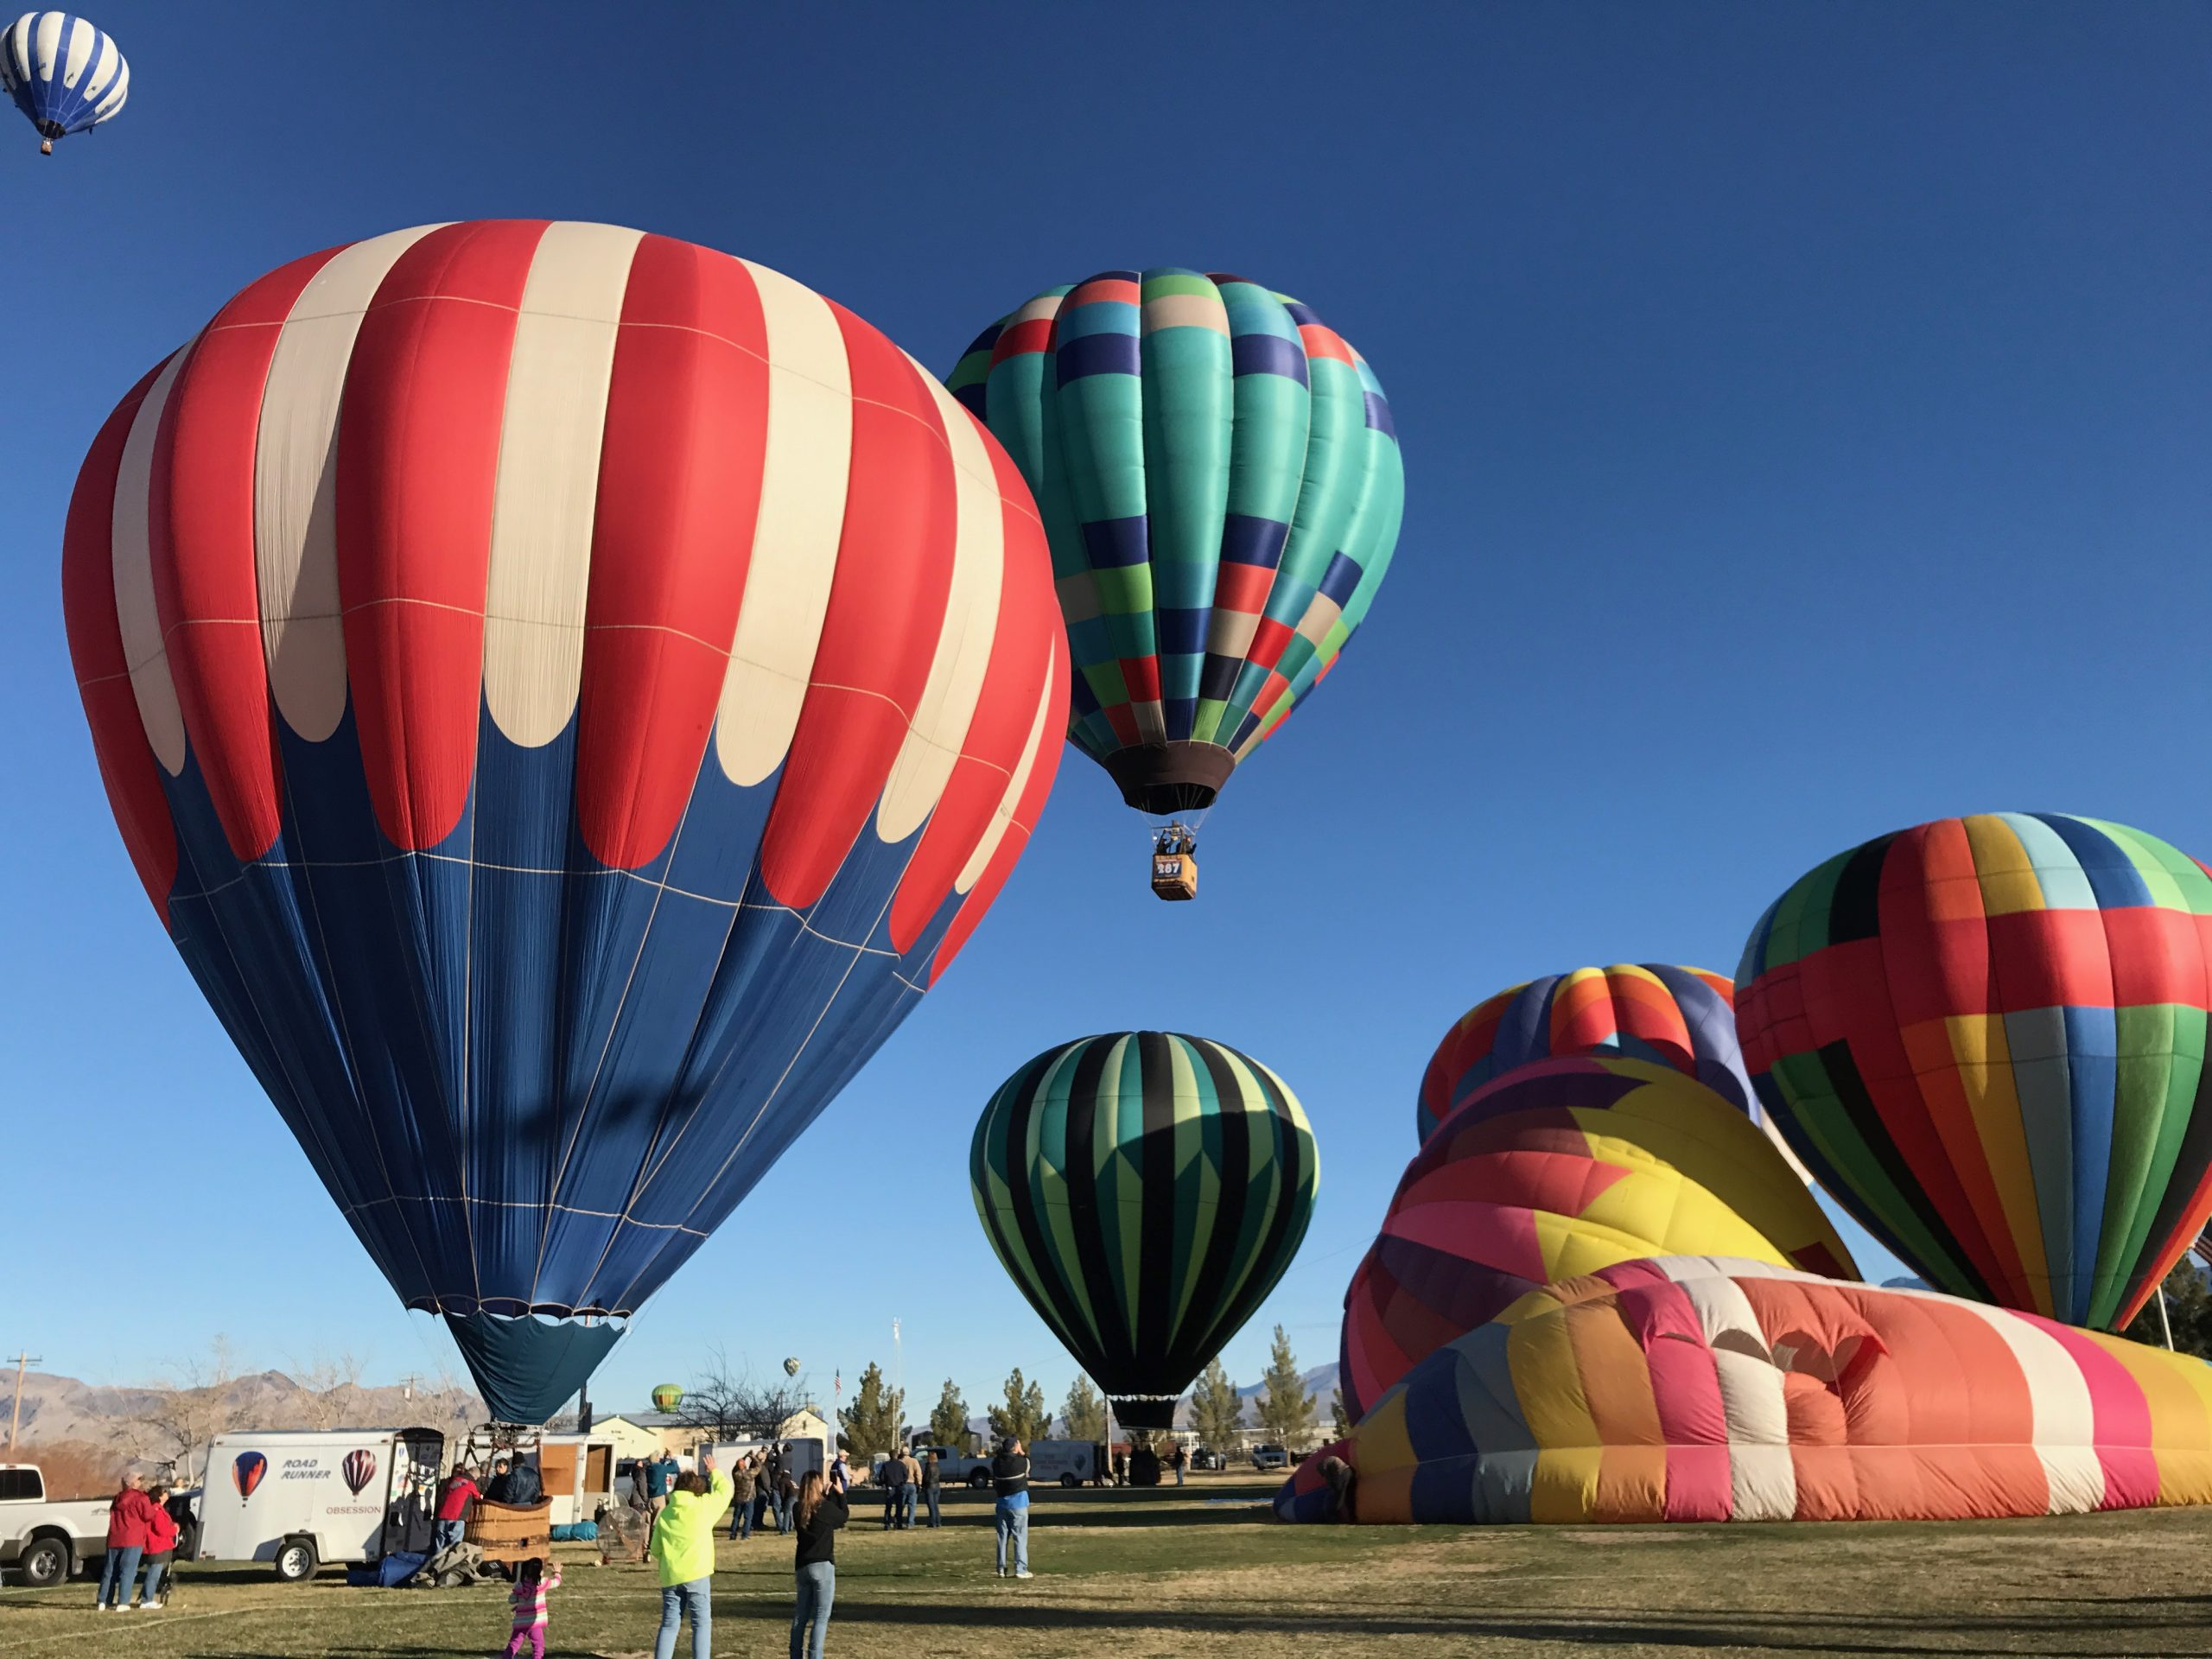 Many air balloons on the ground for the Balloon Festival